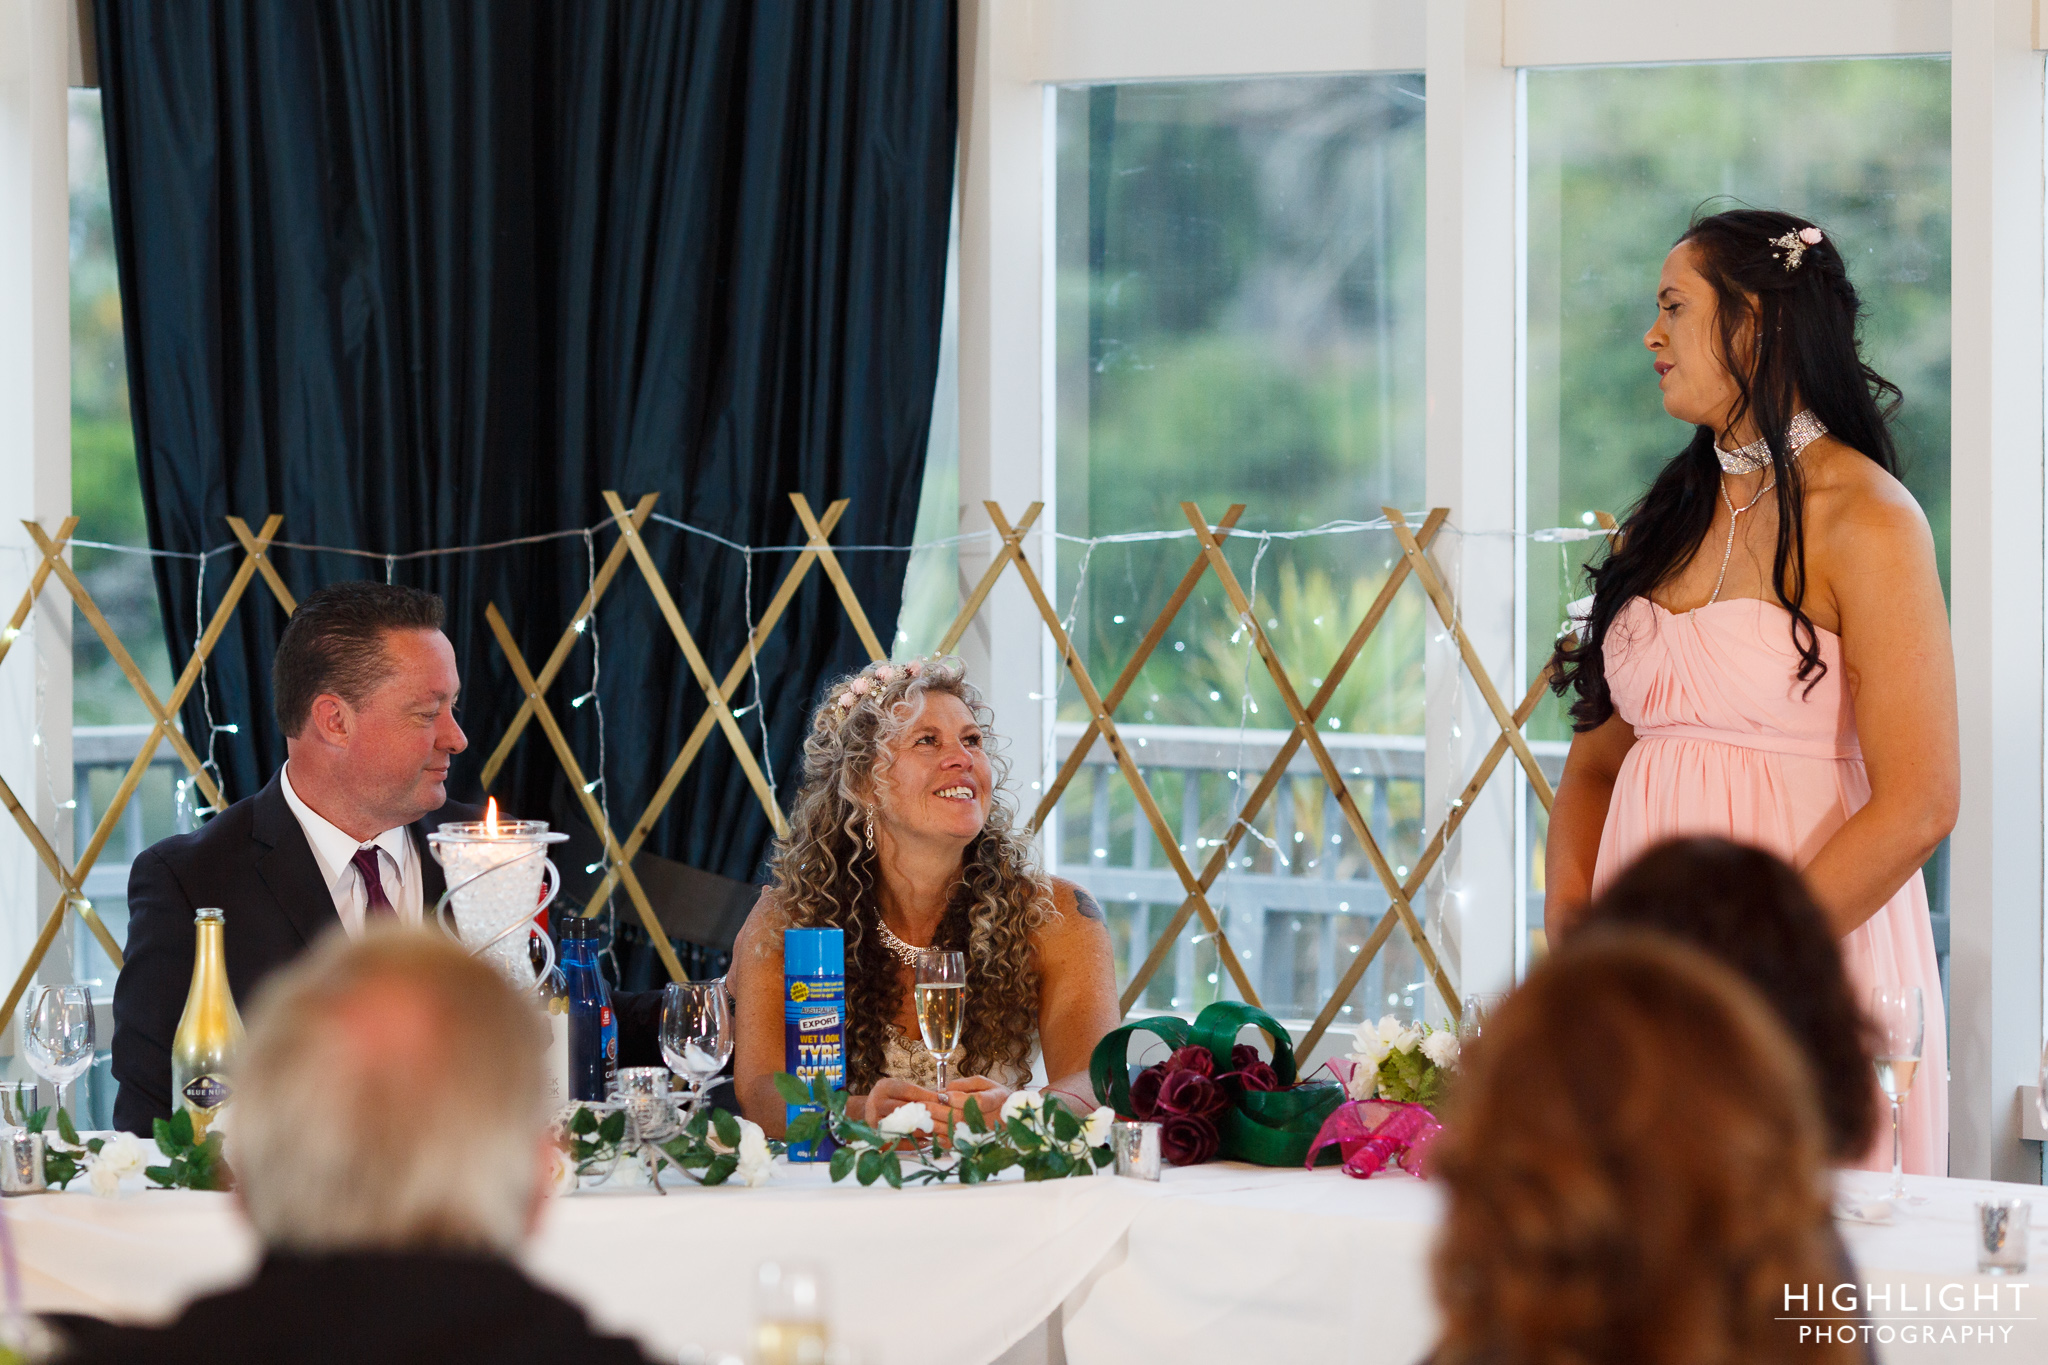 highlight_wedding_photography_palmerston_north_manawatu_chalet_wedding-107.jpg